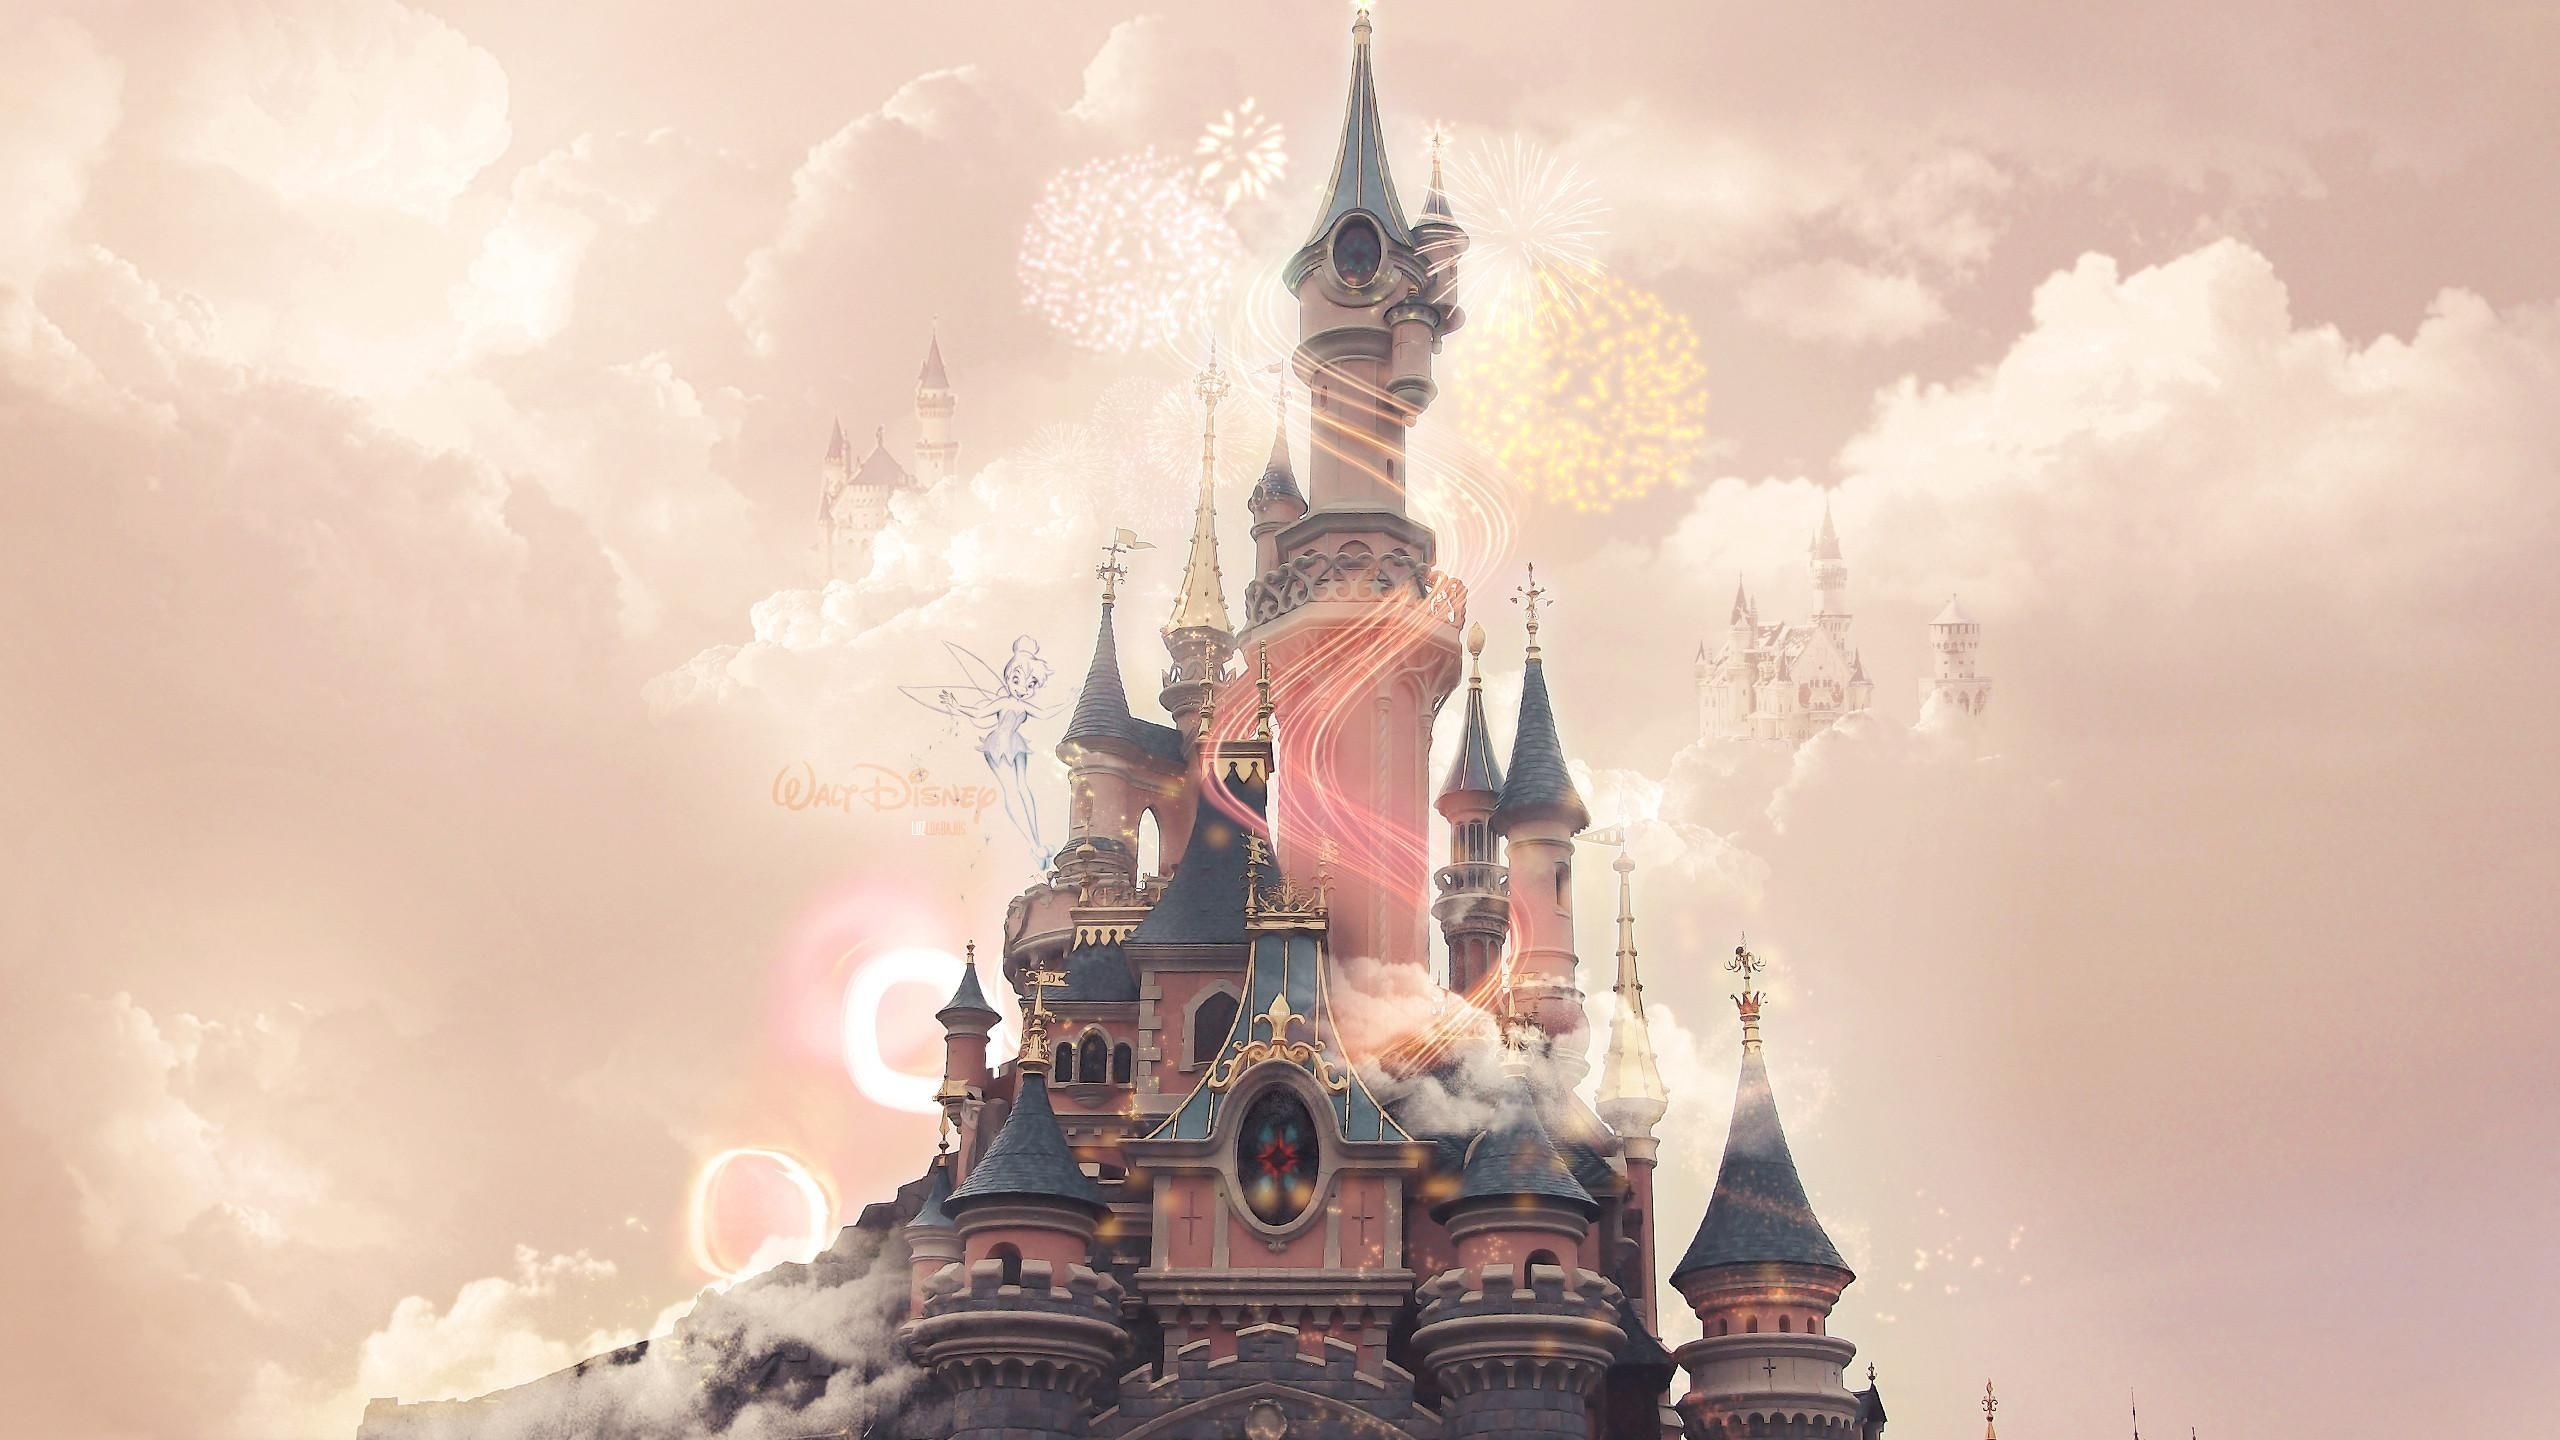 Res: 2560x1440, Wallpapers For Disney Tumblr Backgrounds | HD Wallpapers Range